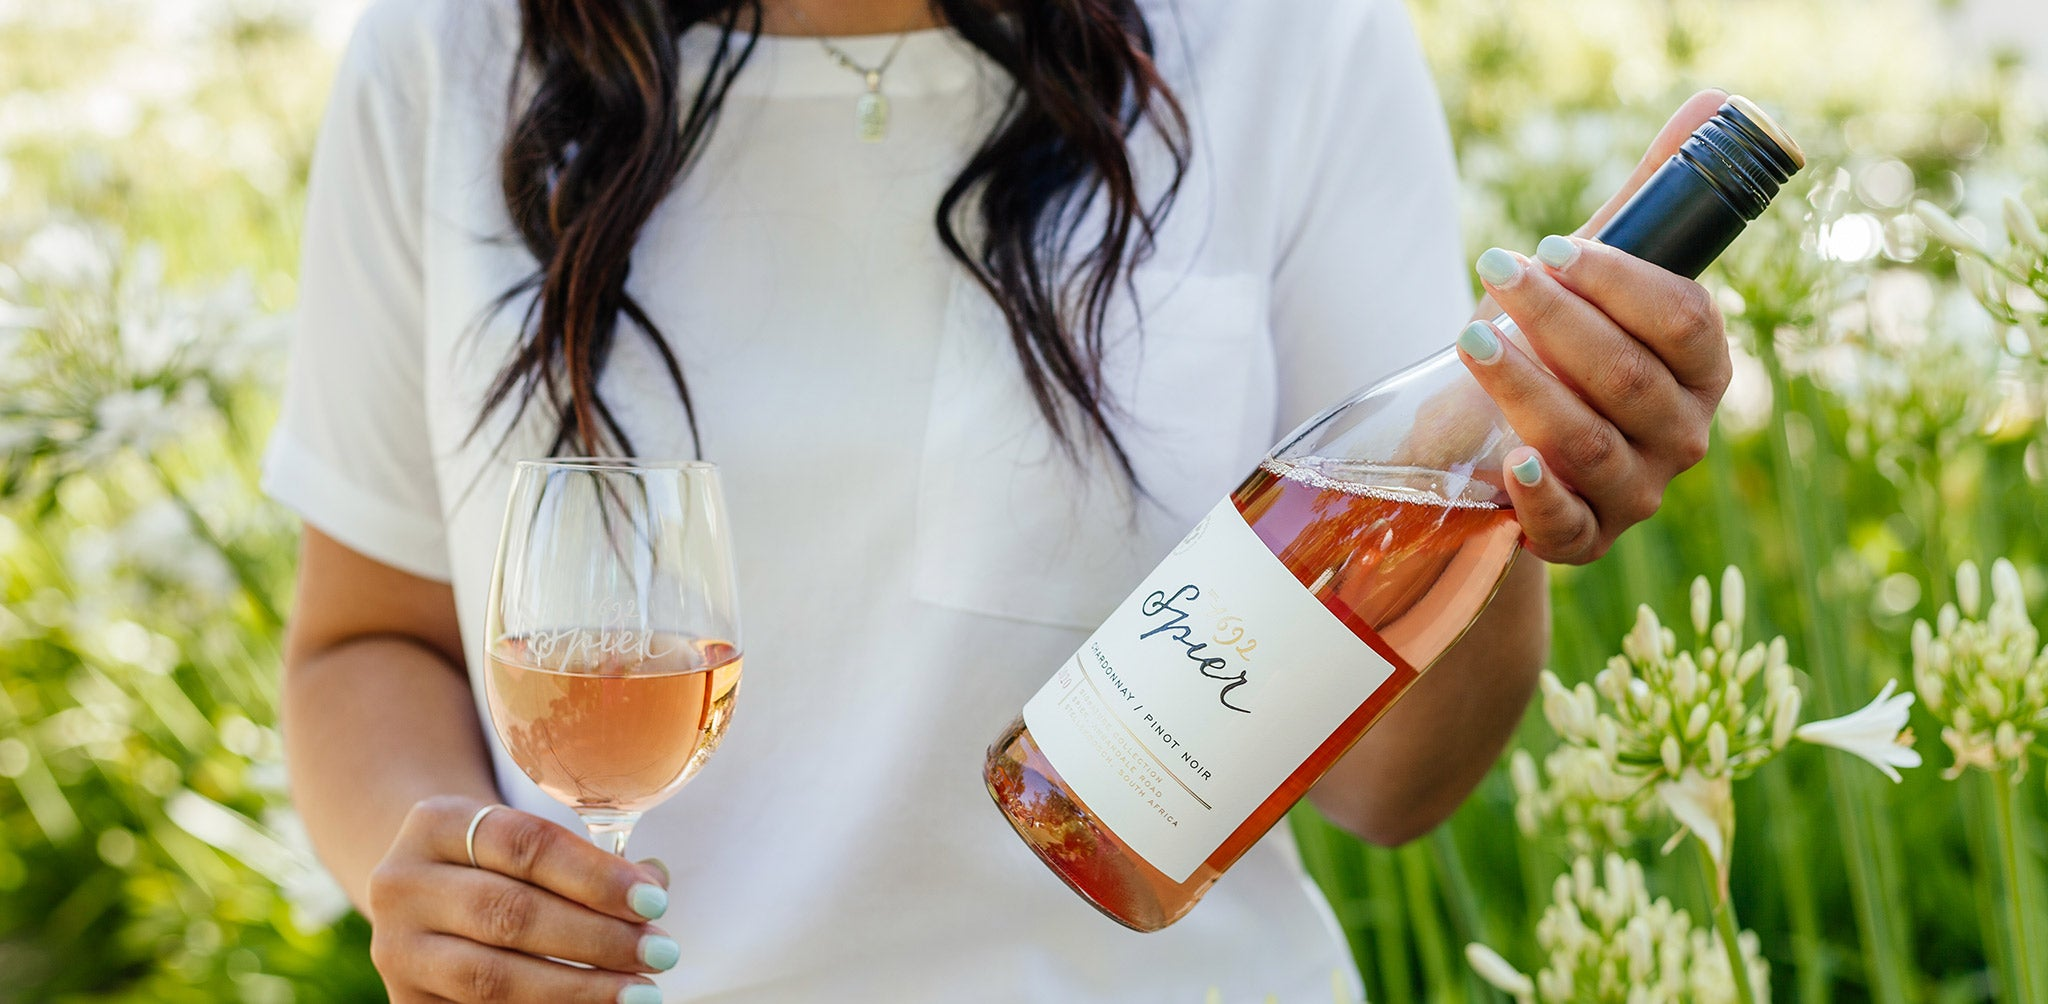 summer wines on promotion